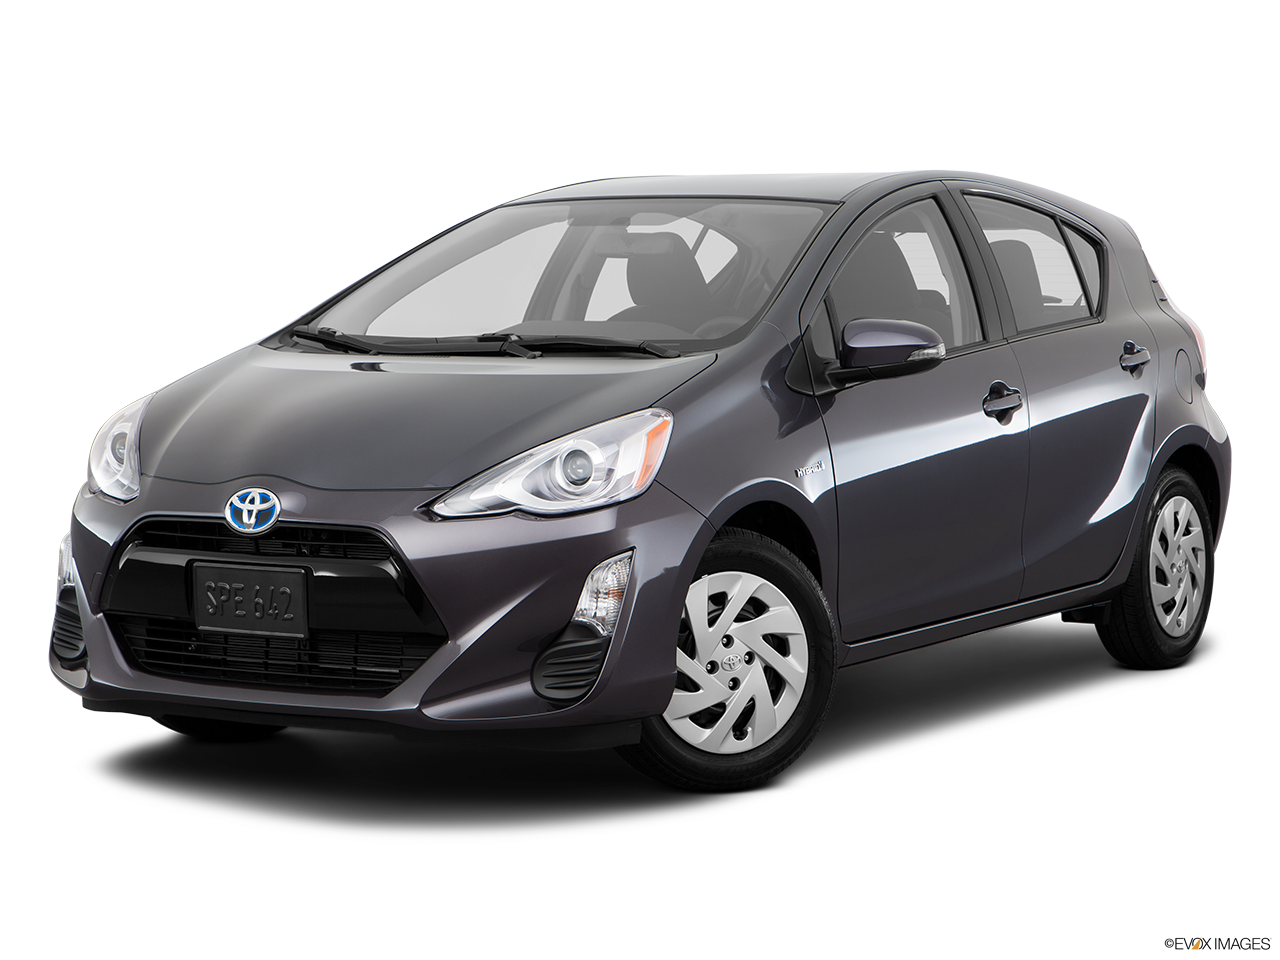 Test Drive A 2016 Toyota Prius C at Toyota of Glendale in Los Angeles